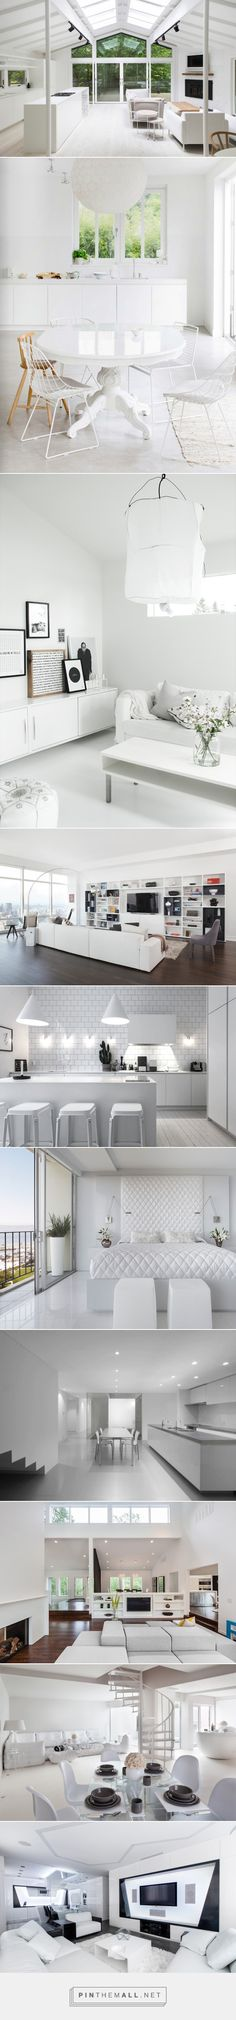 Decorating Ideas: 10 All-White Rooms - Design Milk - created via http://pinthemall.net